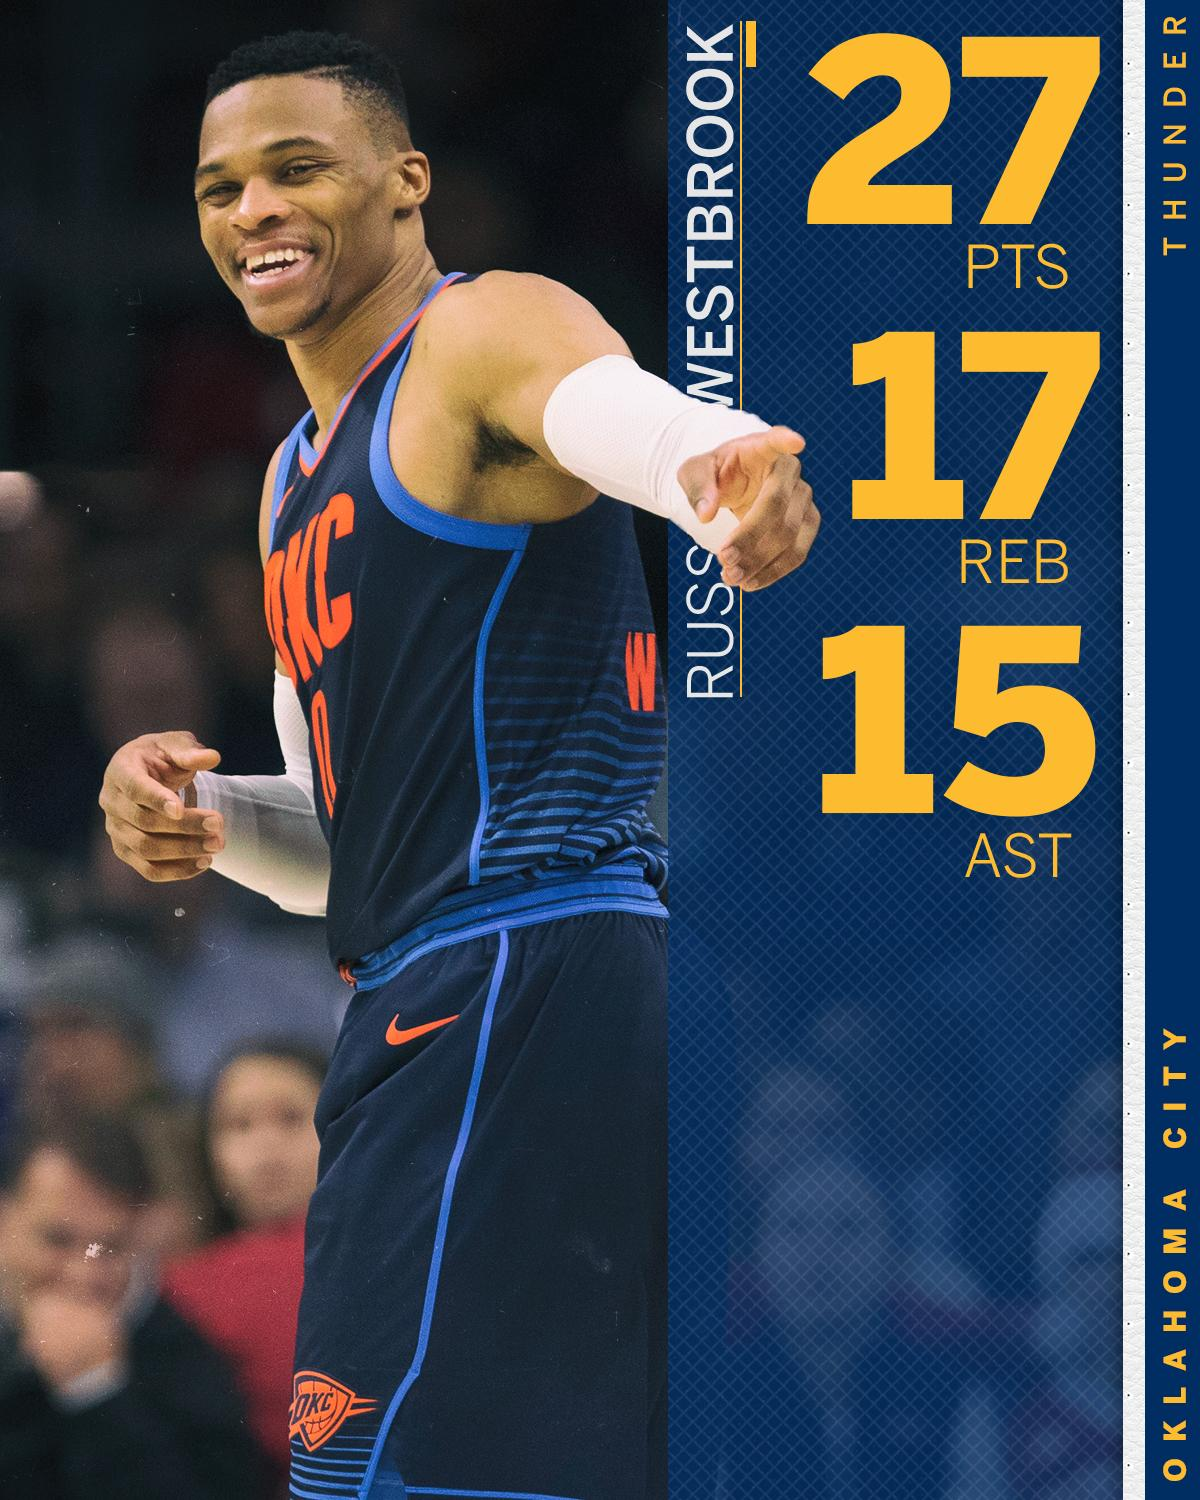 A triple-double and the W for Russ and the Thunder. https://t.co/wxge3mdJDB